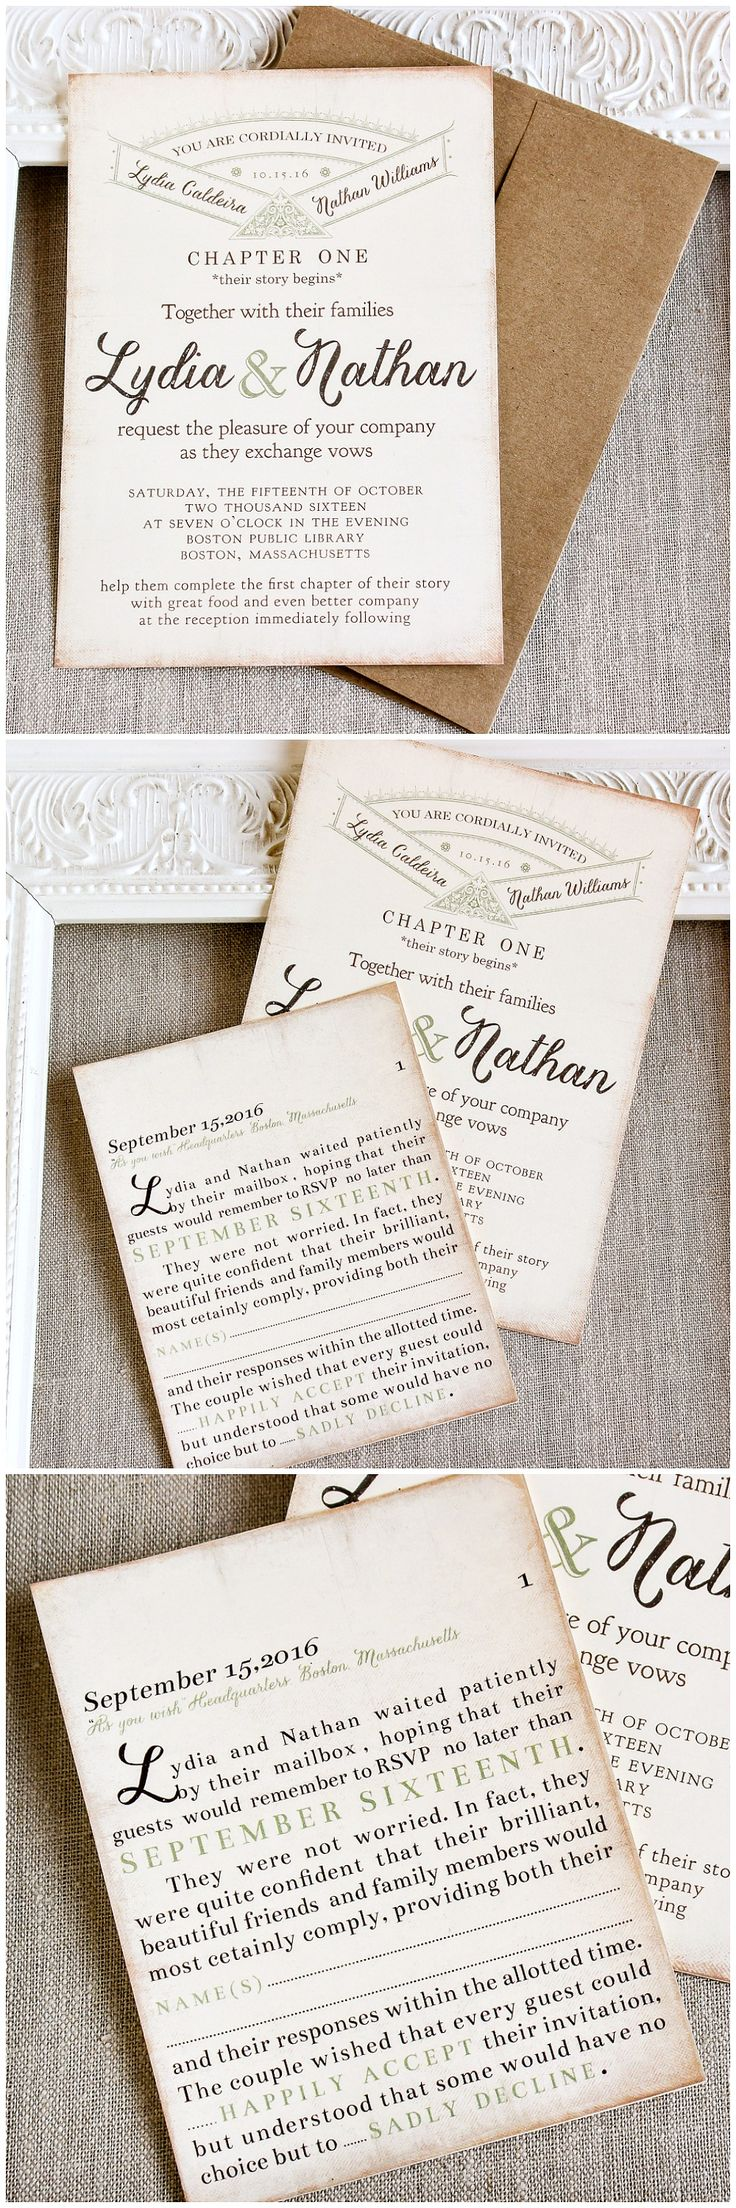 Green Literary Wedding Invitation